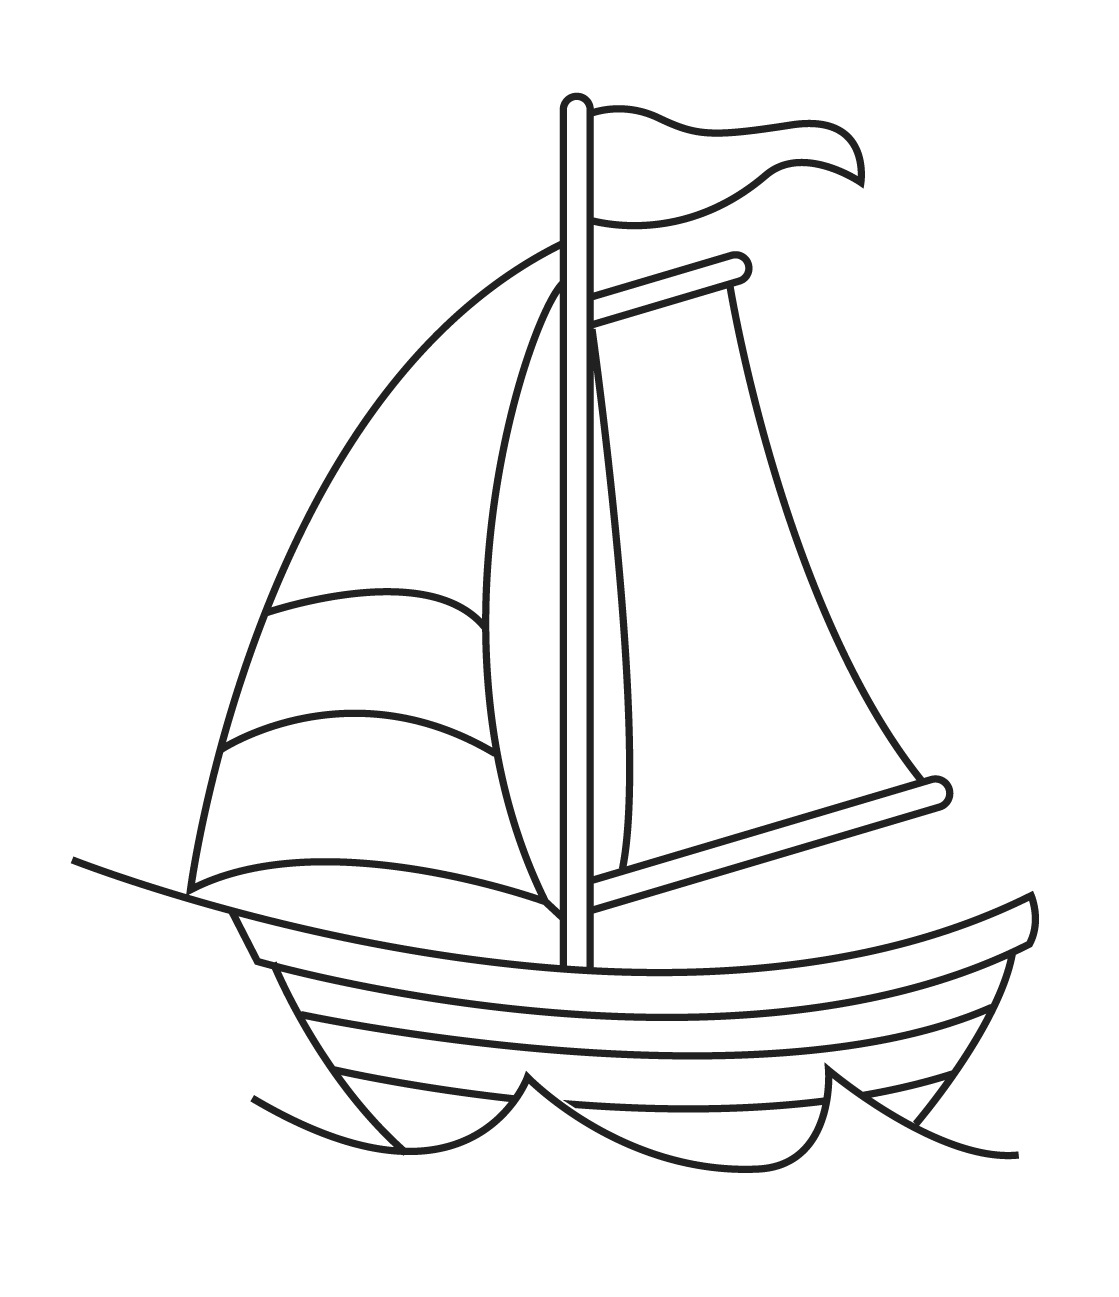 1119x1297 Simple Ship Drawing Sunglassesray